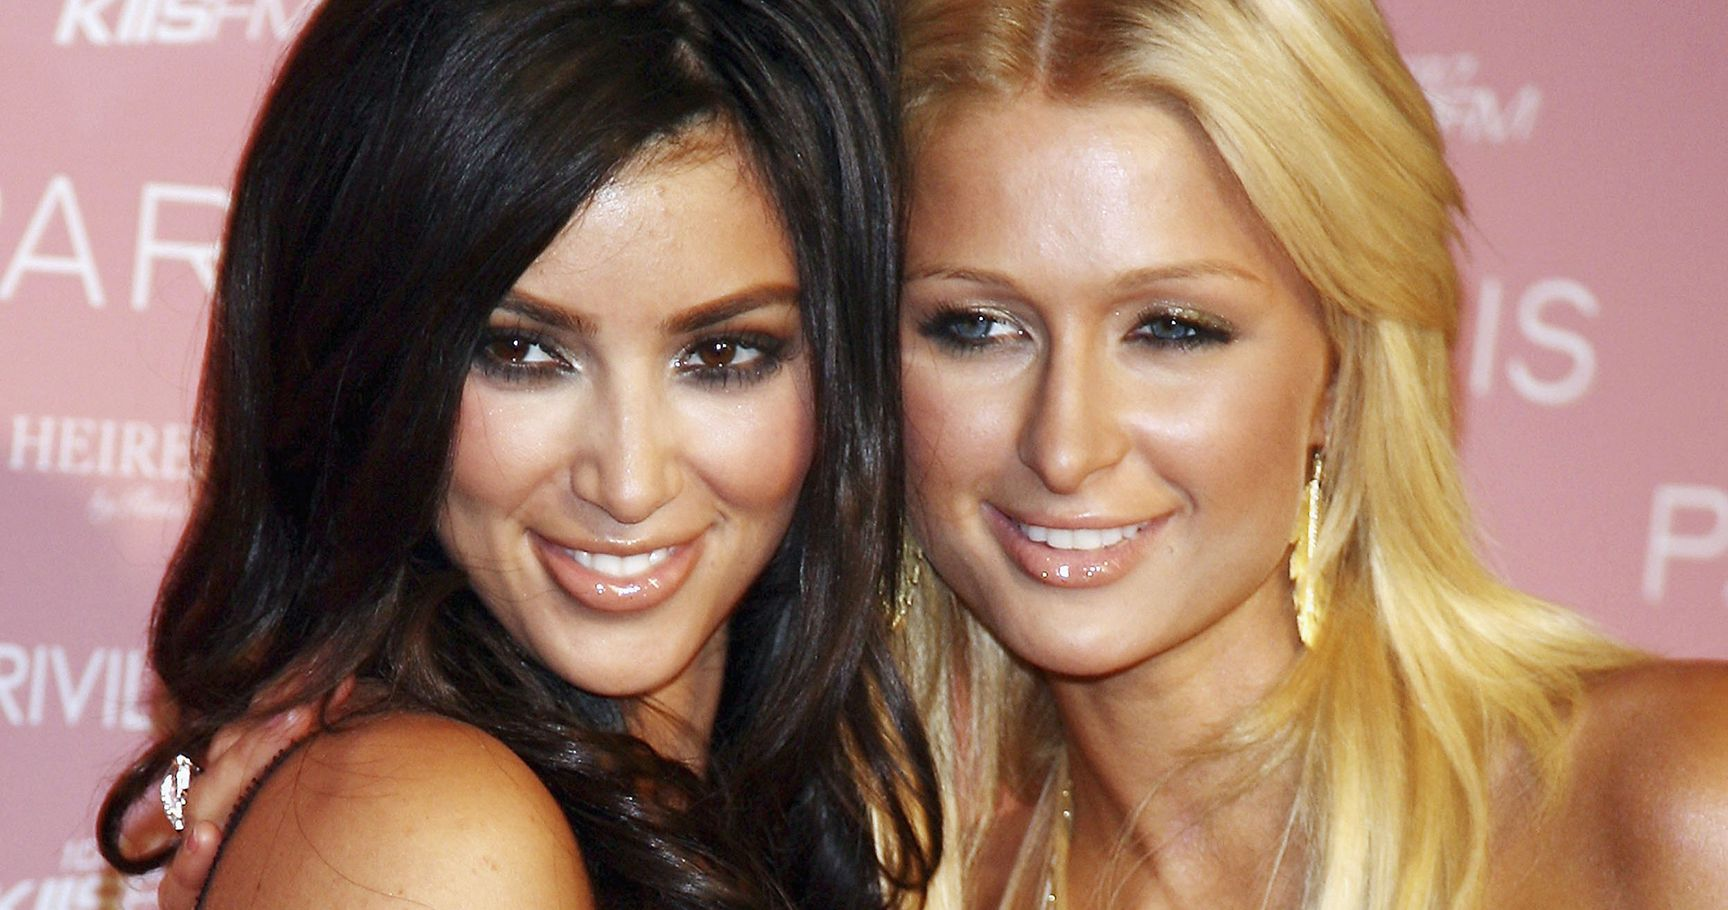 10 Careers The Kardashians Have Destroyed